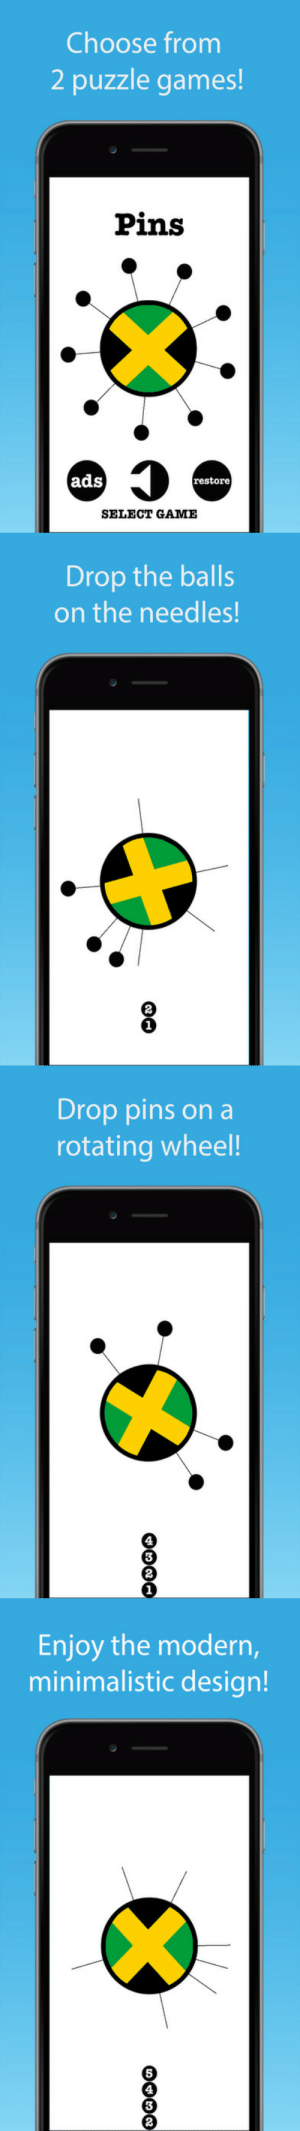 lol-coaster:    Pins  Needles - Fun Spinning Puzzle Game  Test your reflexes and logic skills in two fun puzzle games. Pins and Needles includes two separate spinning circle games!: Choose from  2 puzzle games!  Pins  1  ads  restore  SELECT GAME   Drop the balls  on the needles!  2   Drop pins on a  rotating wheel!  4  3  2   Enjoy the modern,  minimalistic design!  5  4  3  2 lol-coaster:    Pins  Needles - Fun Spinning Puzzle Game  Test your reflexes and logic skills in two fun puzzle games. Pins and Needles includes two separate spinning circle games!